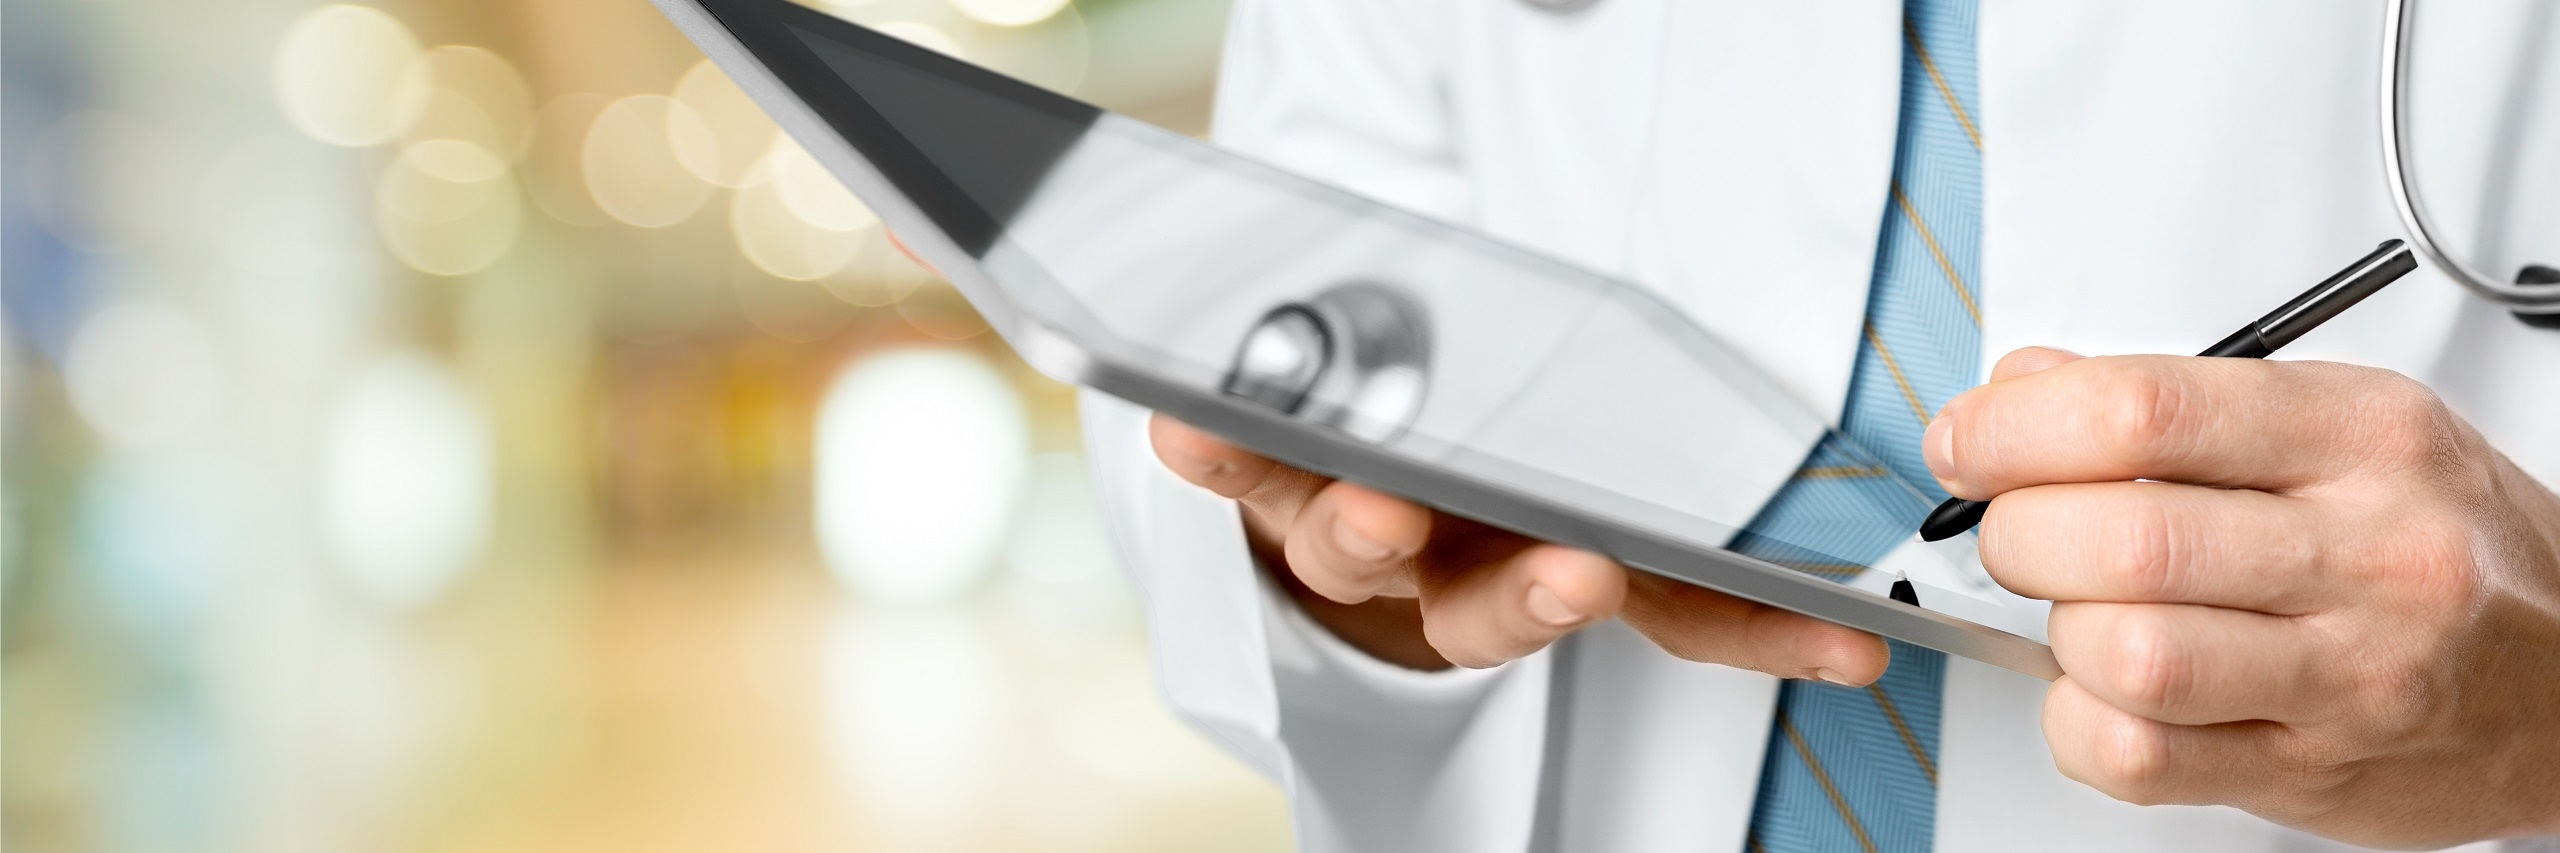 Health care provider holding a tablet and stylus pen.